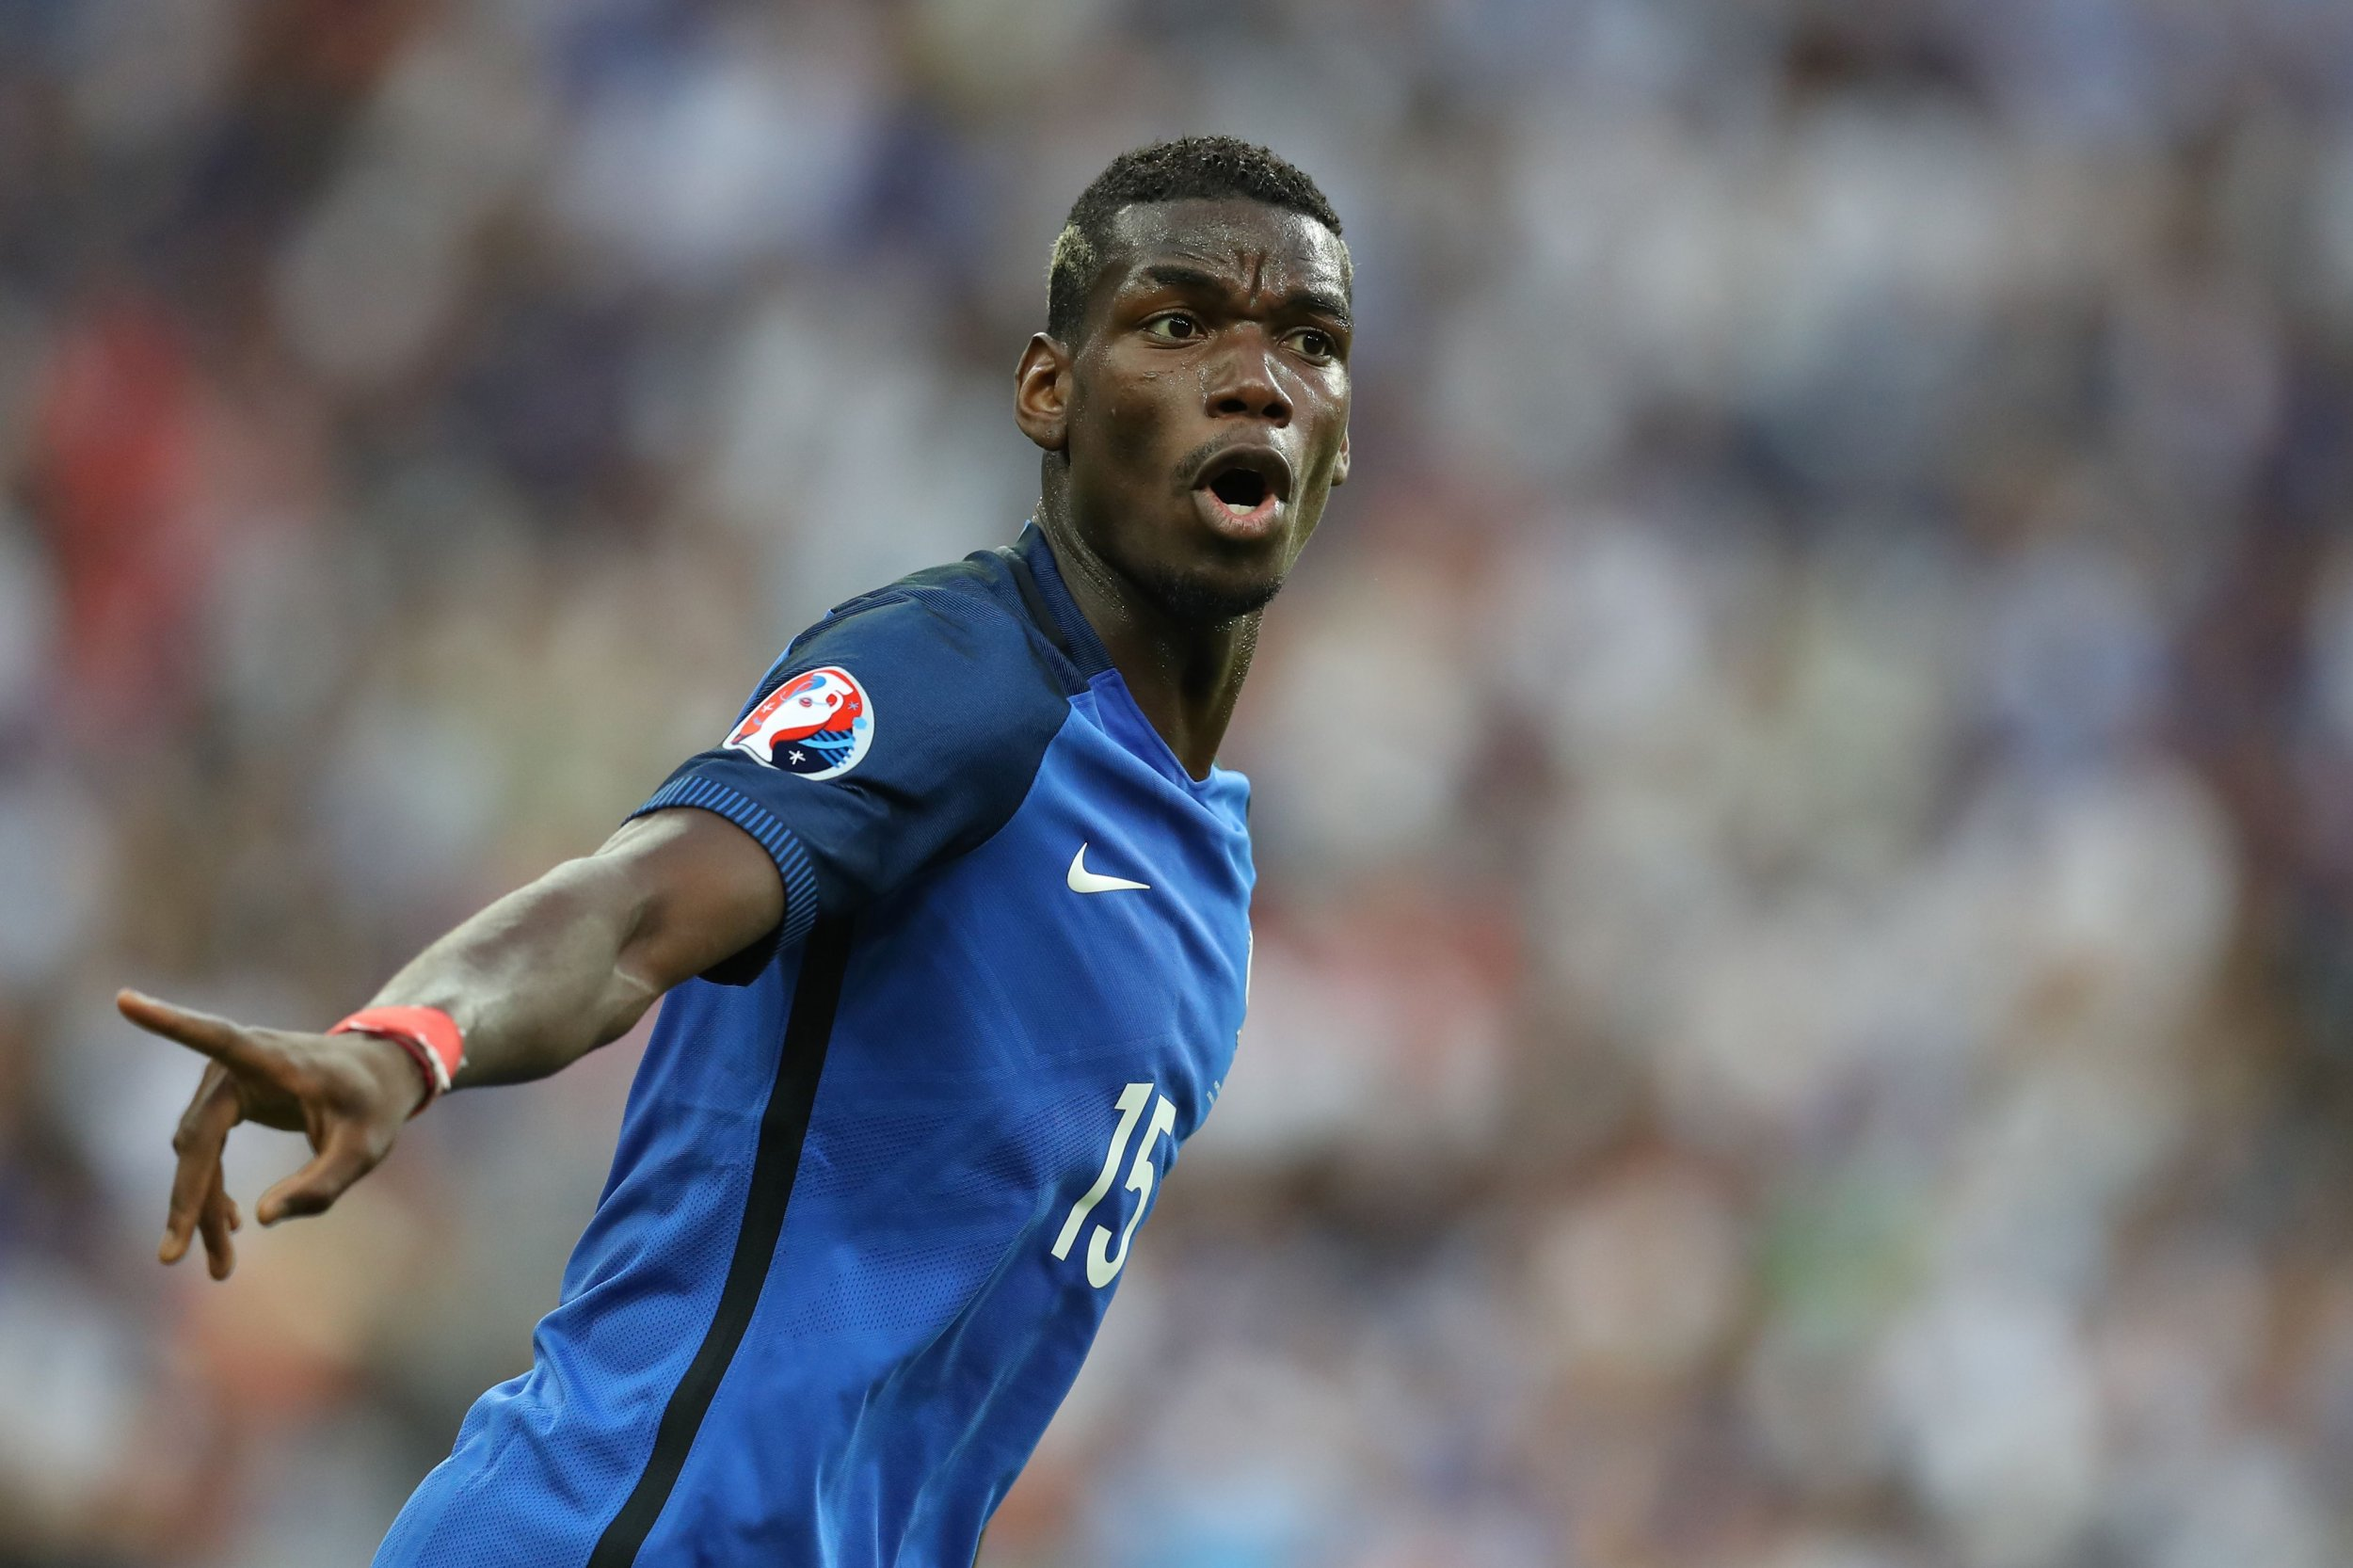 Juventus and France midfielder Paul Pogba